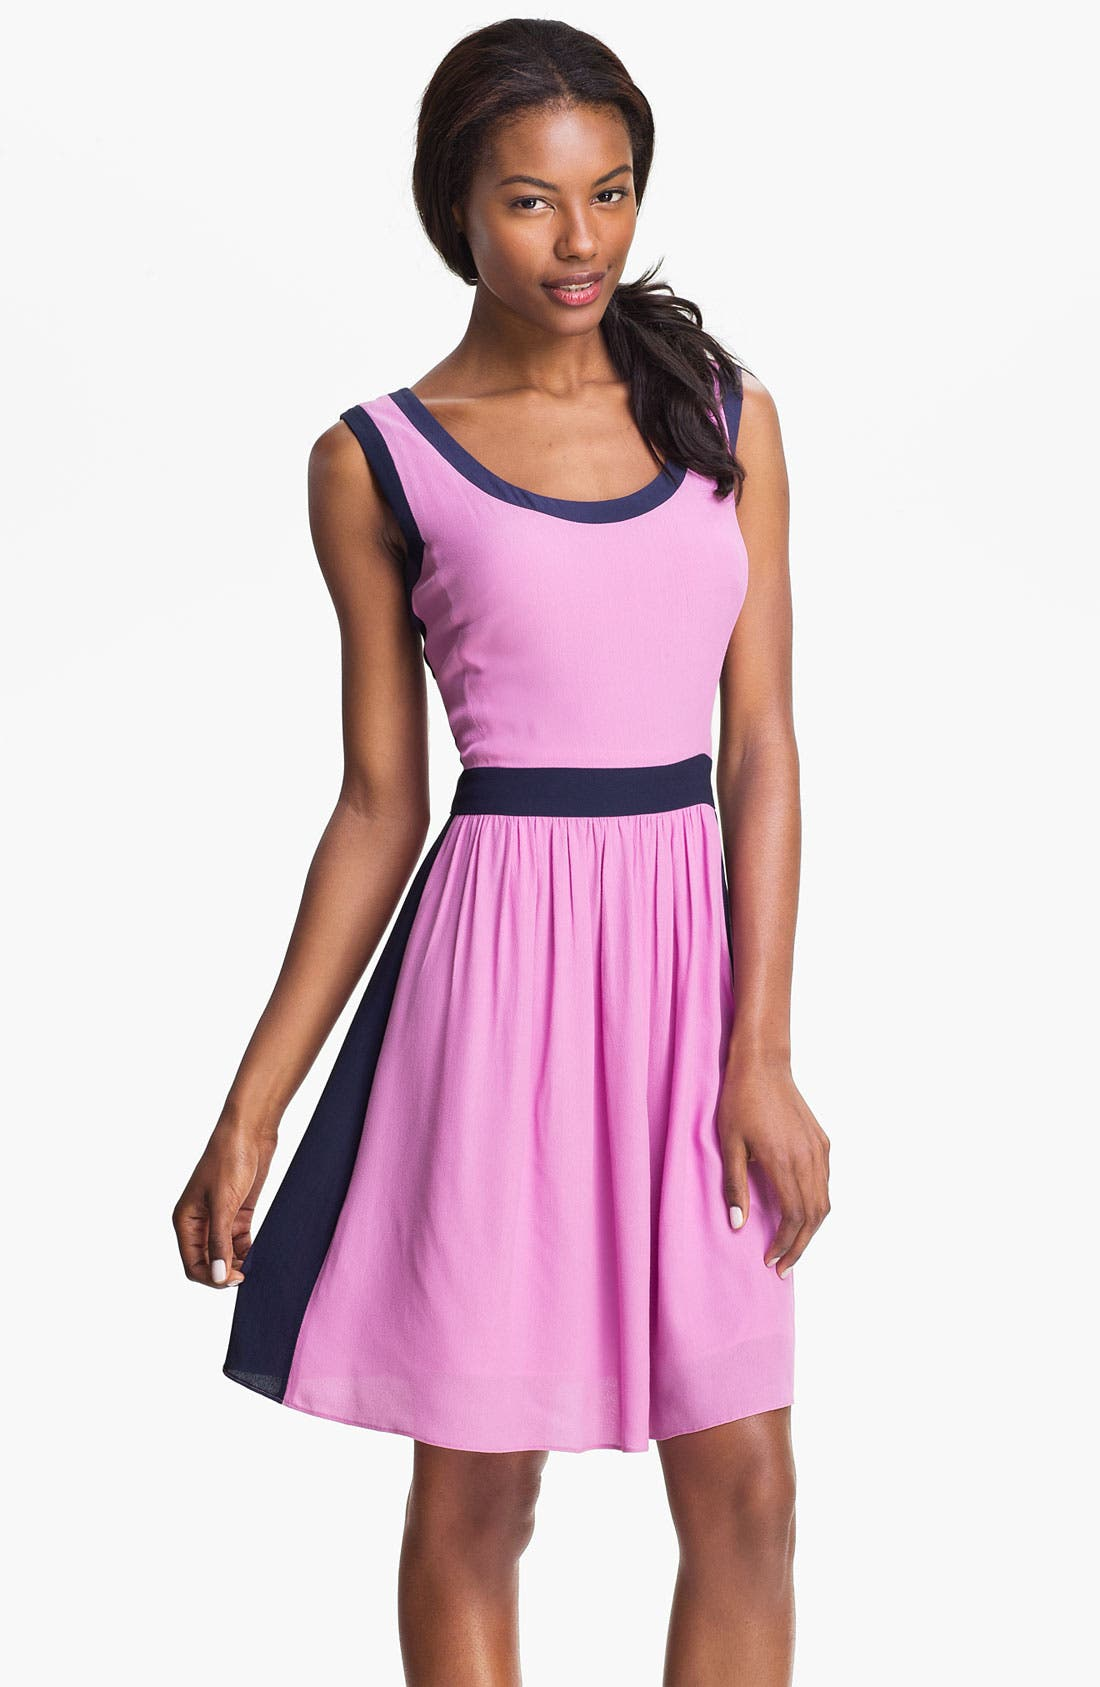 Main Image - Lilly Pulitzer® 'Irene' Contrast Panel Dress